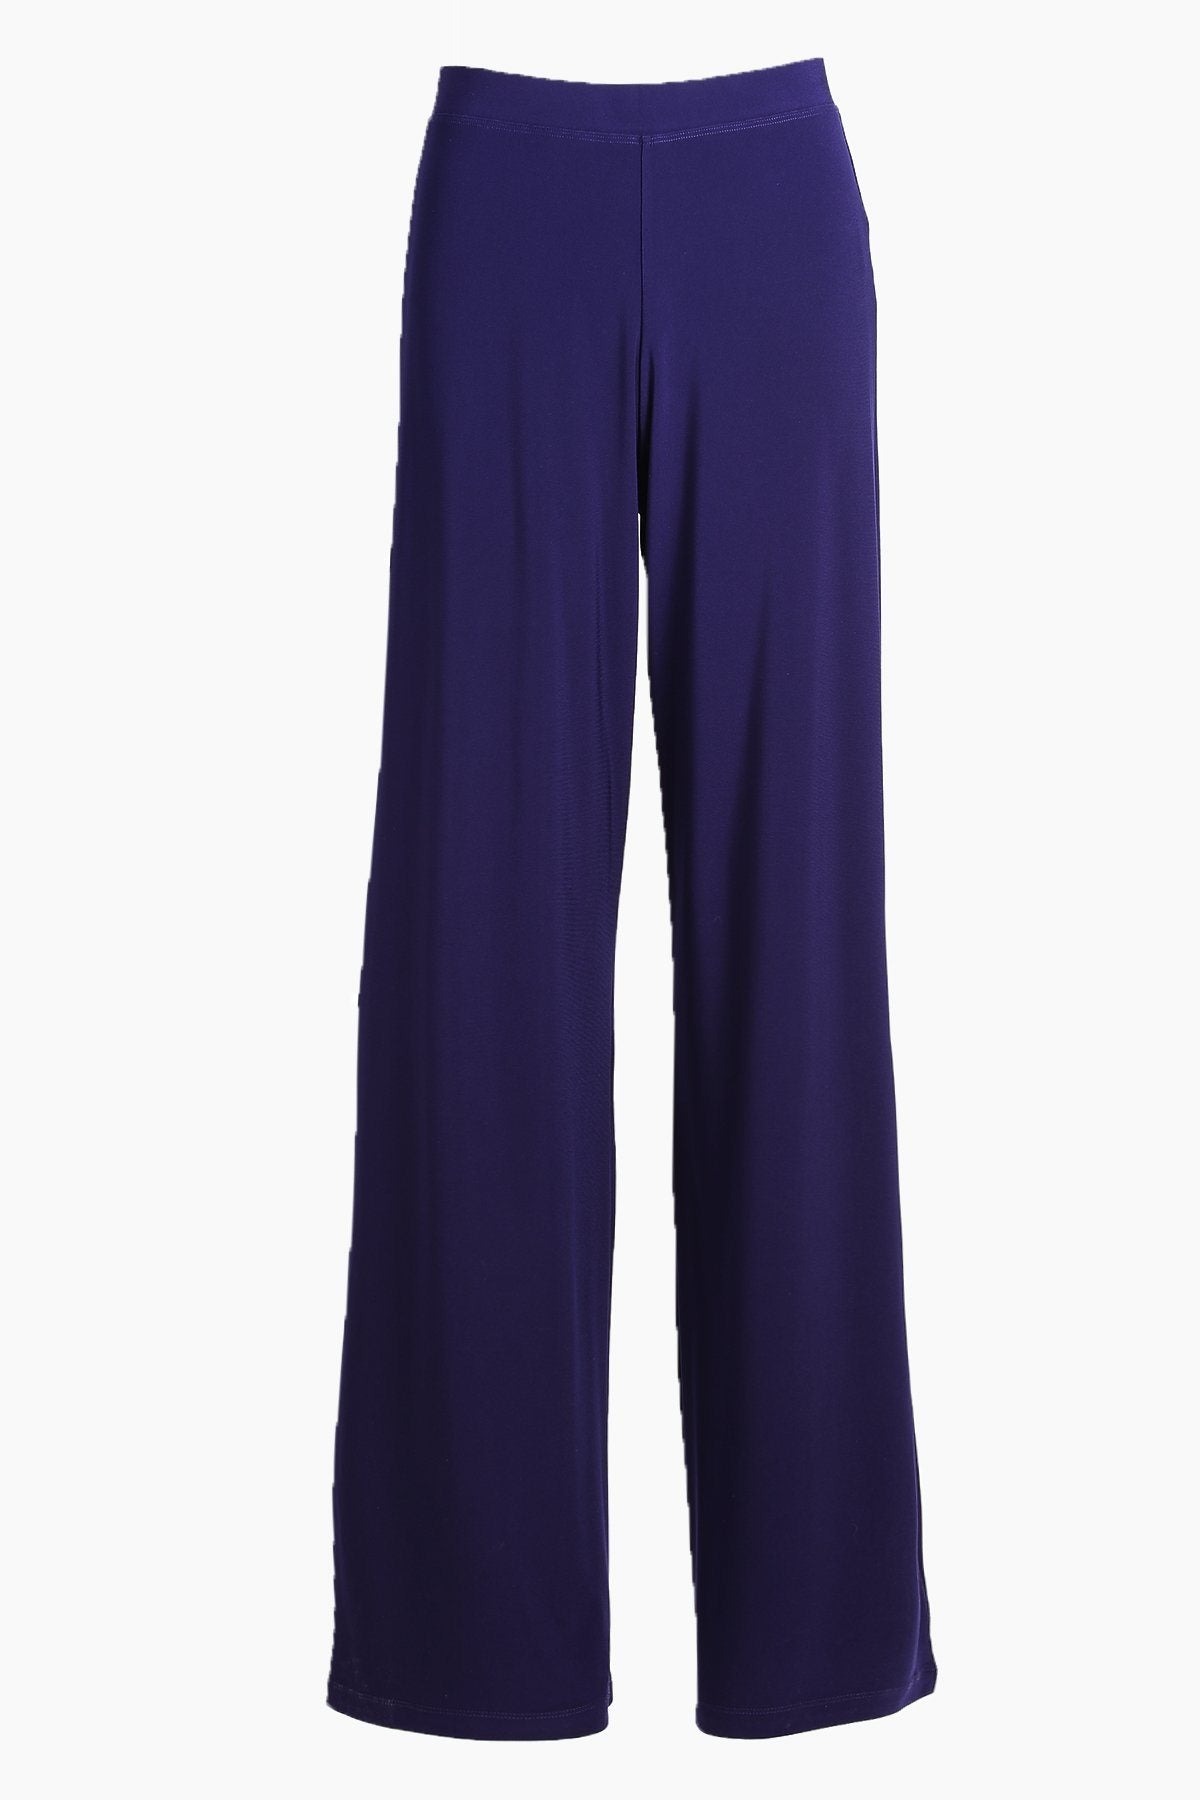 Navy Wide Leg Pants - Women's Clothing -ROSARINI